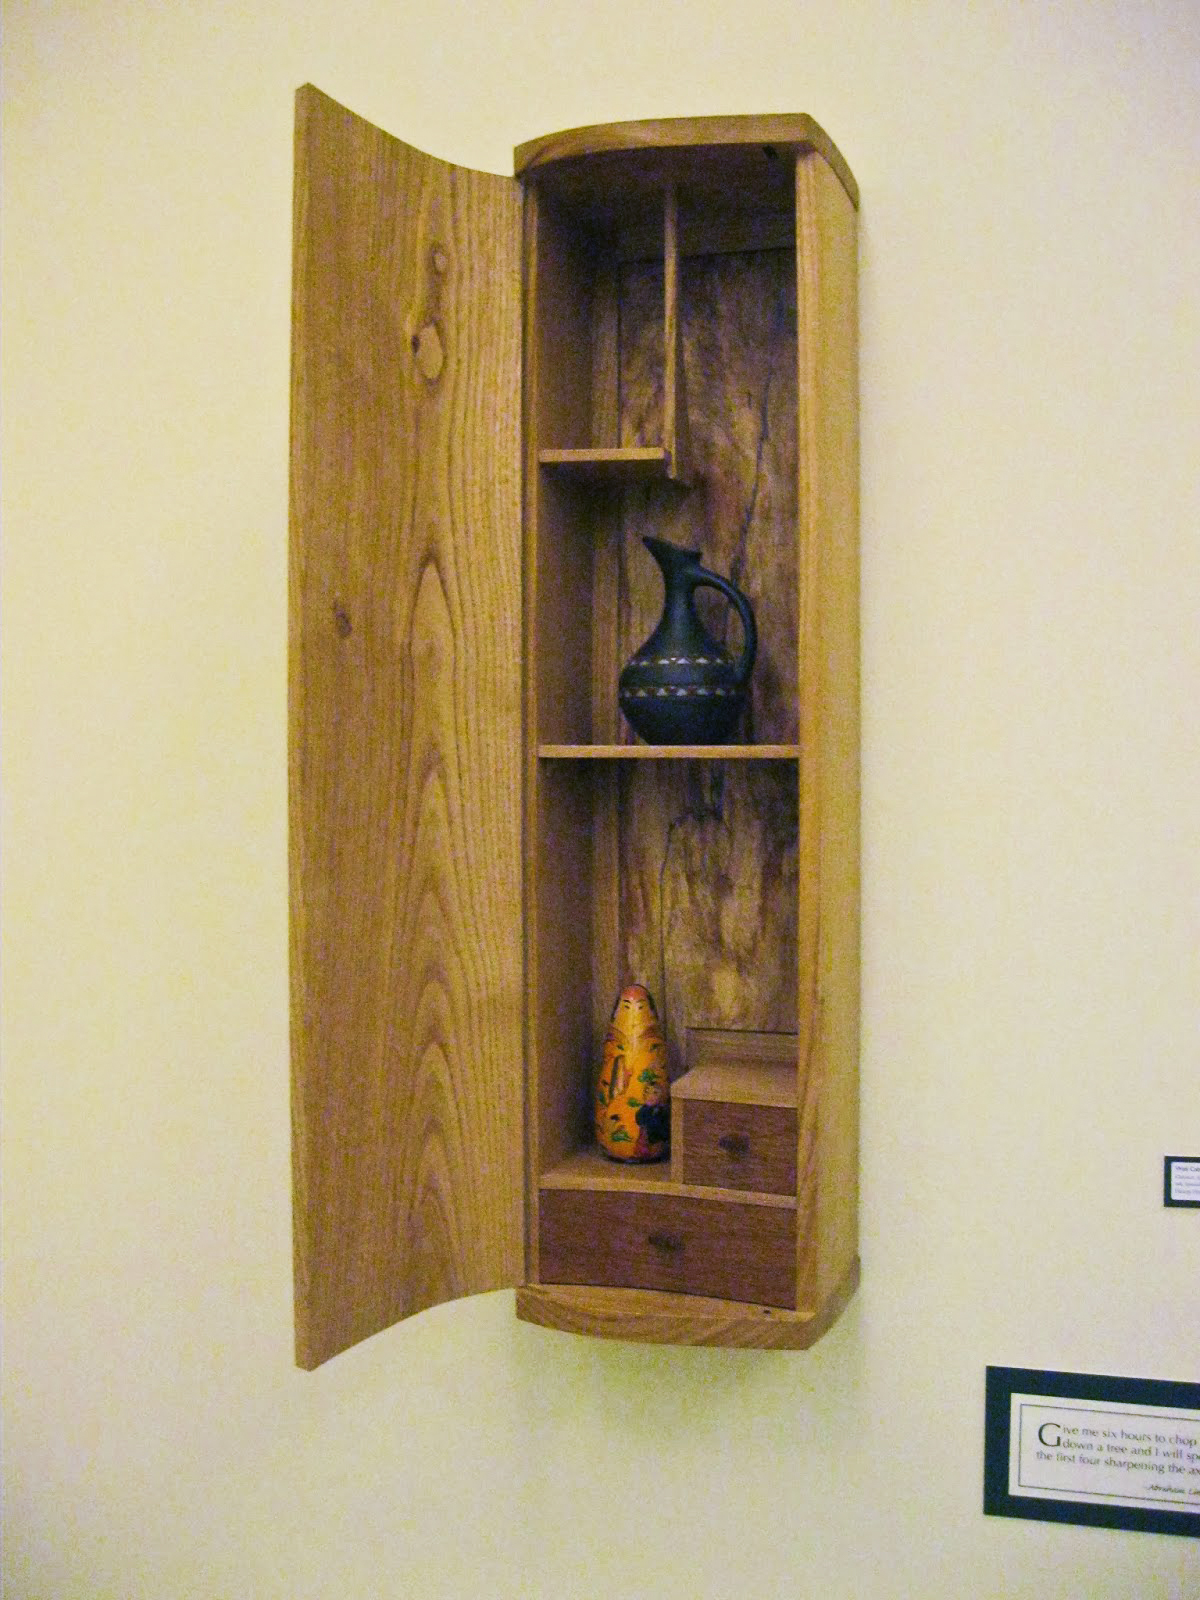 red rocks community college woodworking